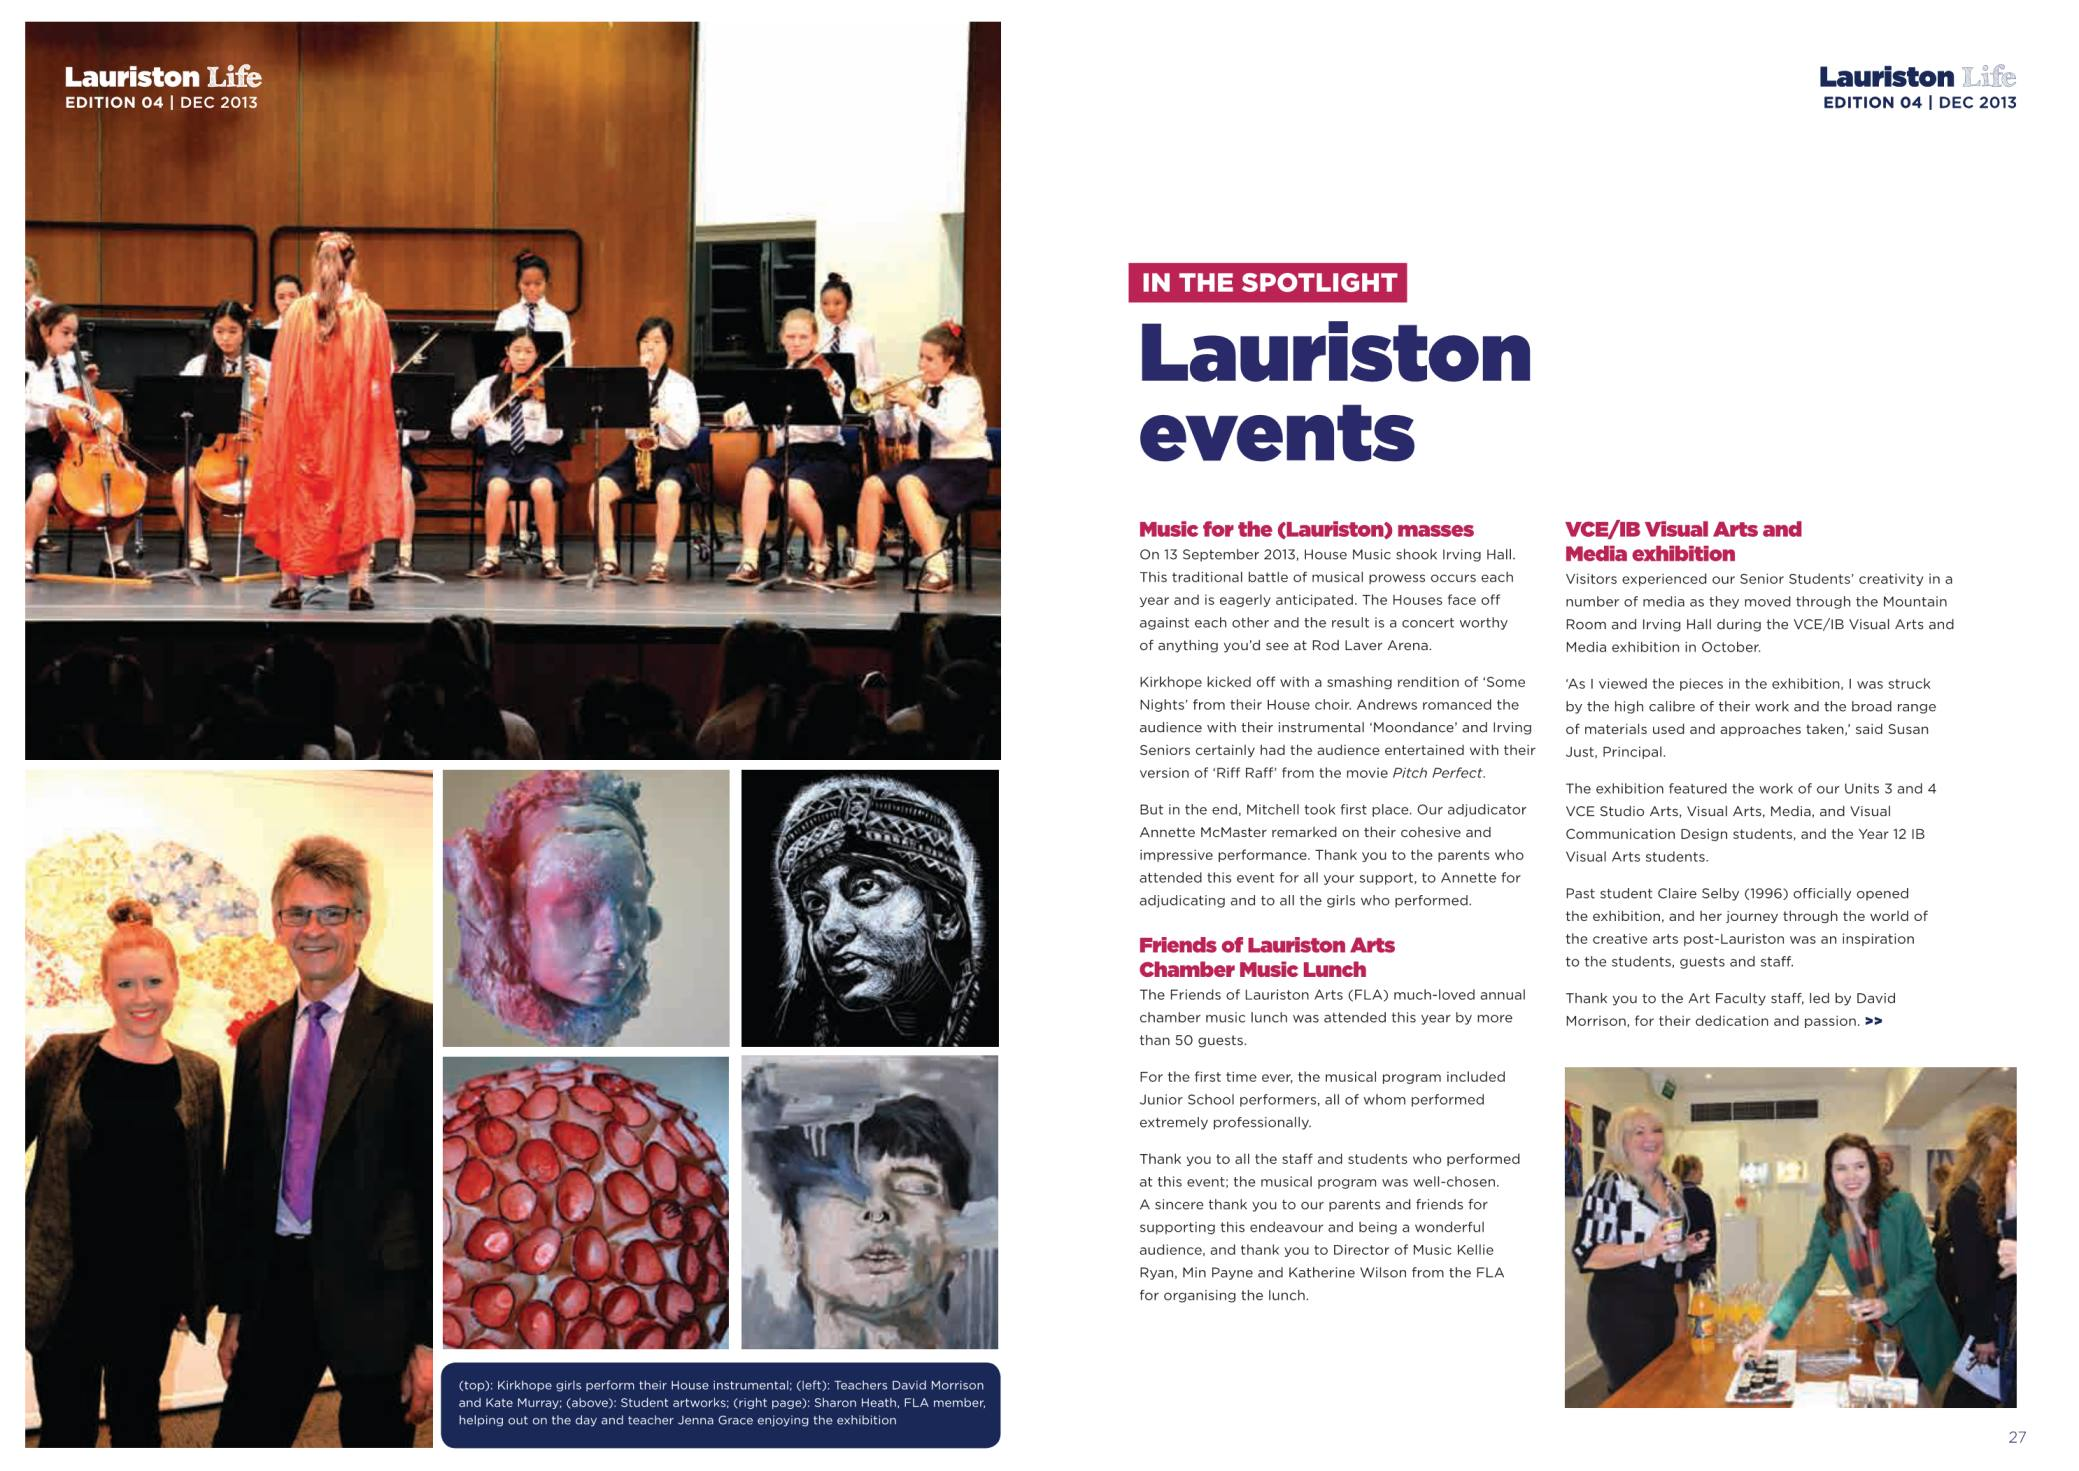 Index of /publications/lauriston-life-december-edition-2013/files